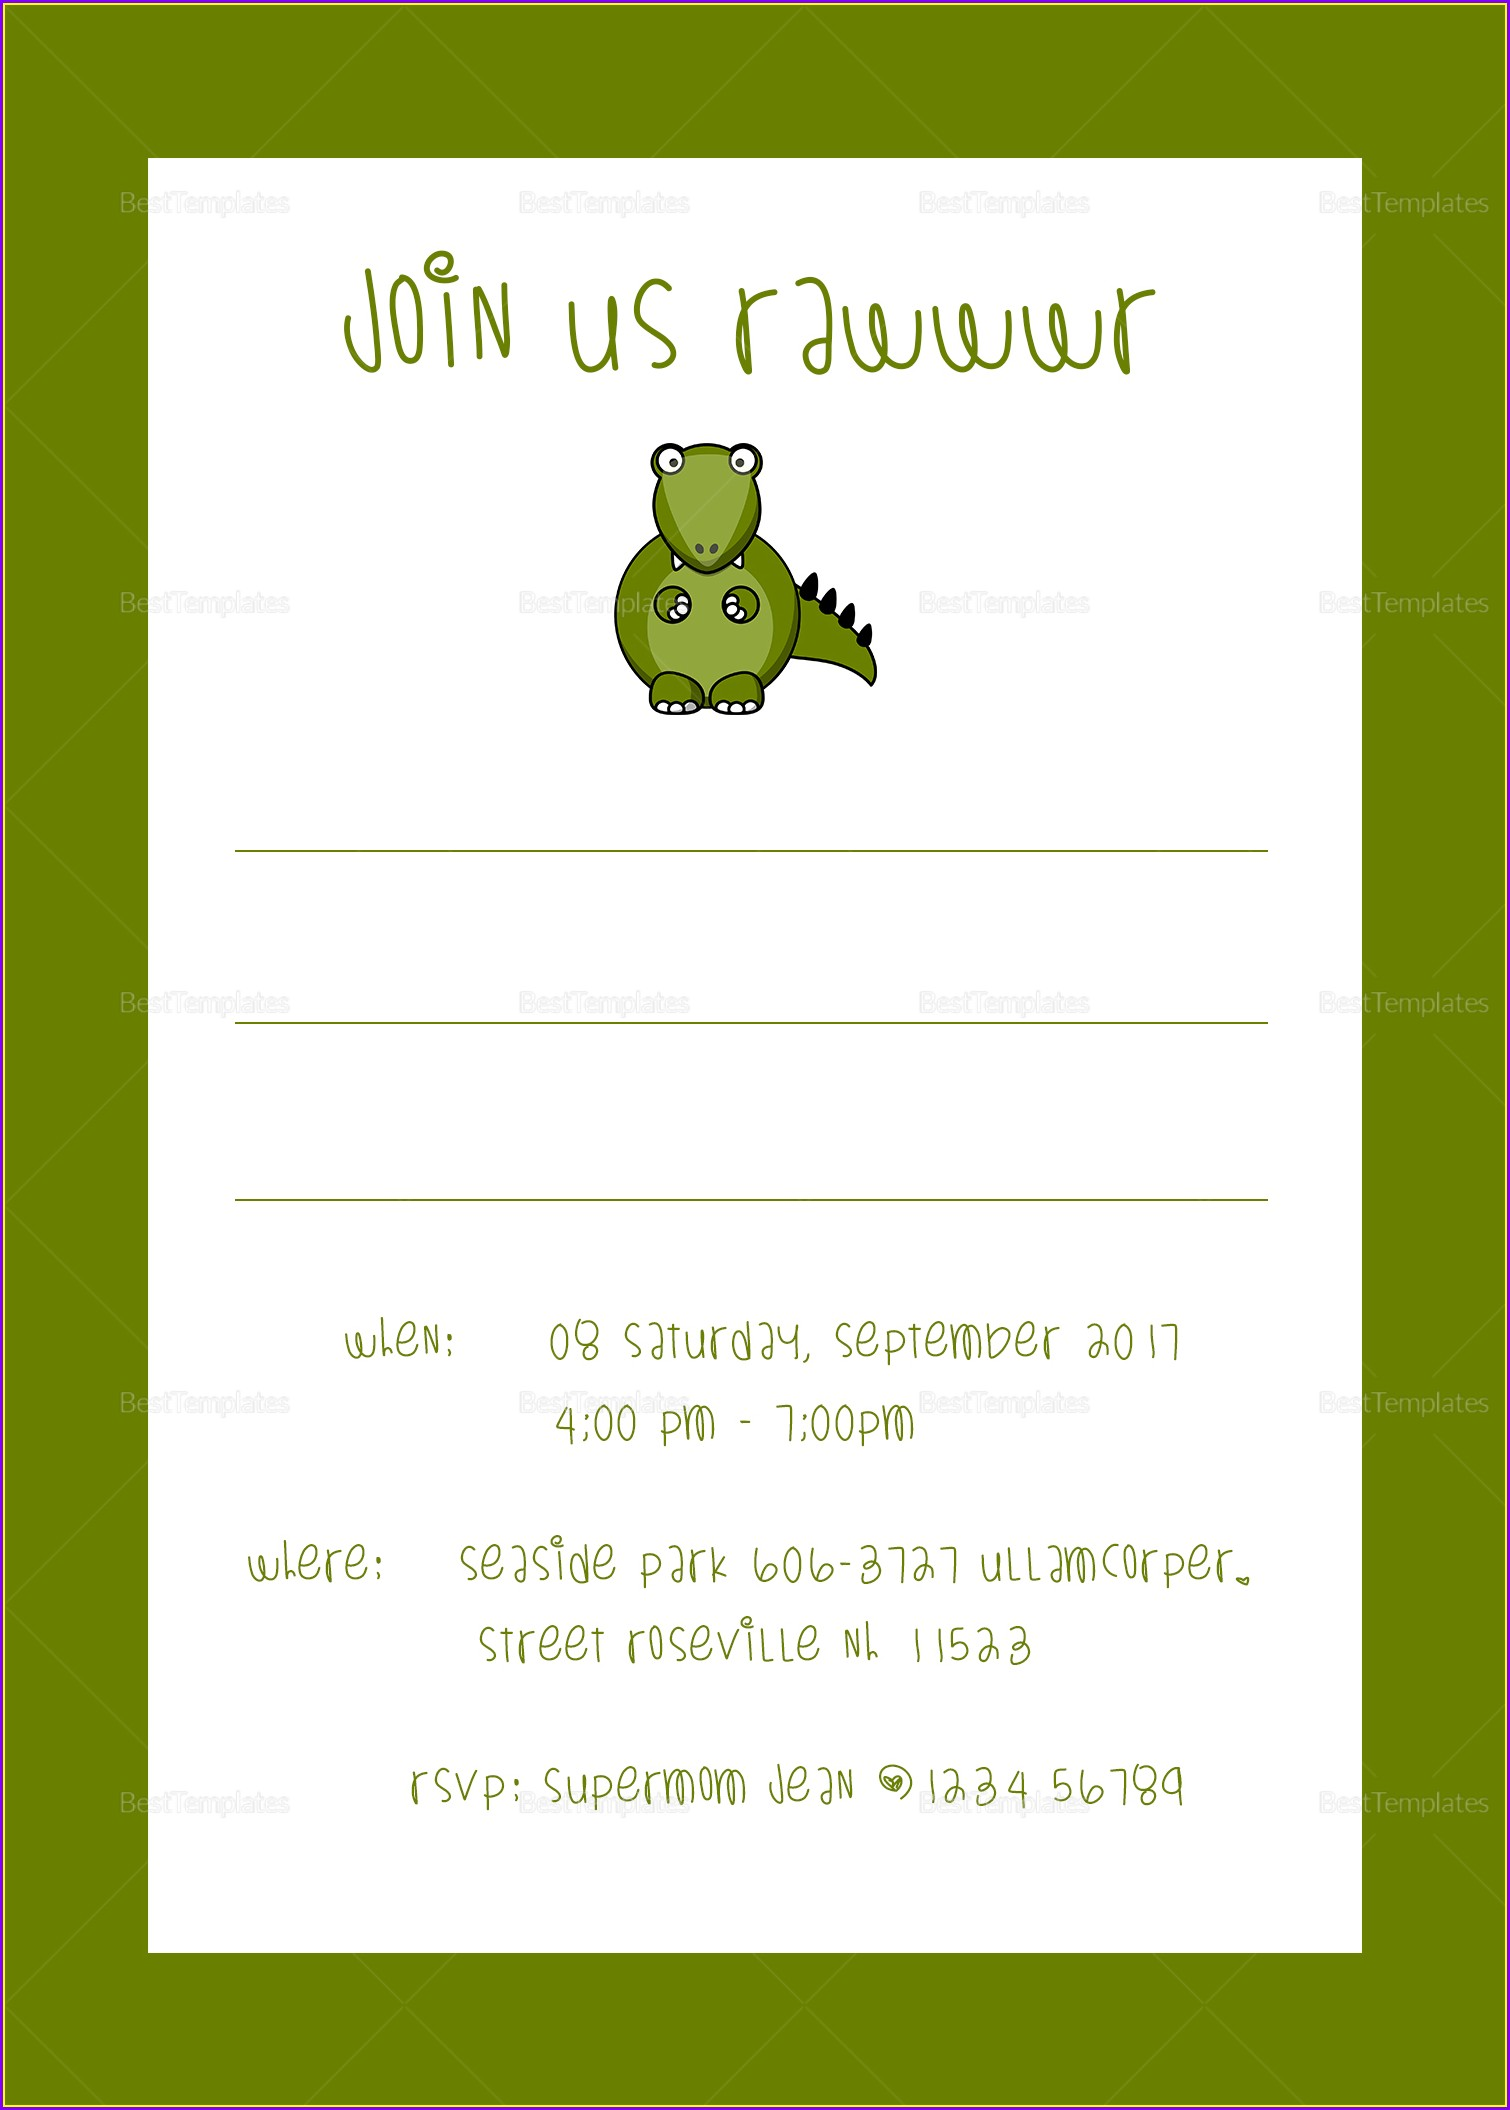 Dinosaur Birthday Party Invitation Template